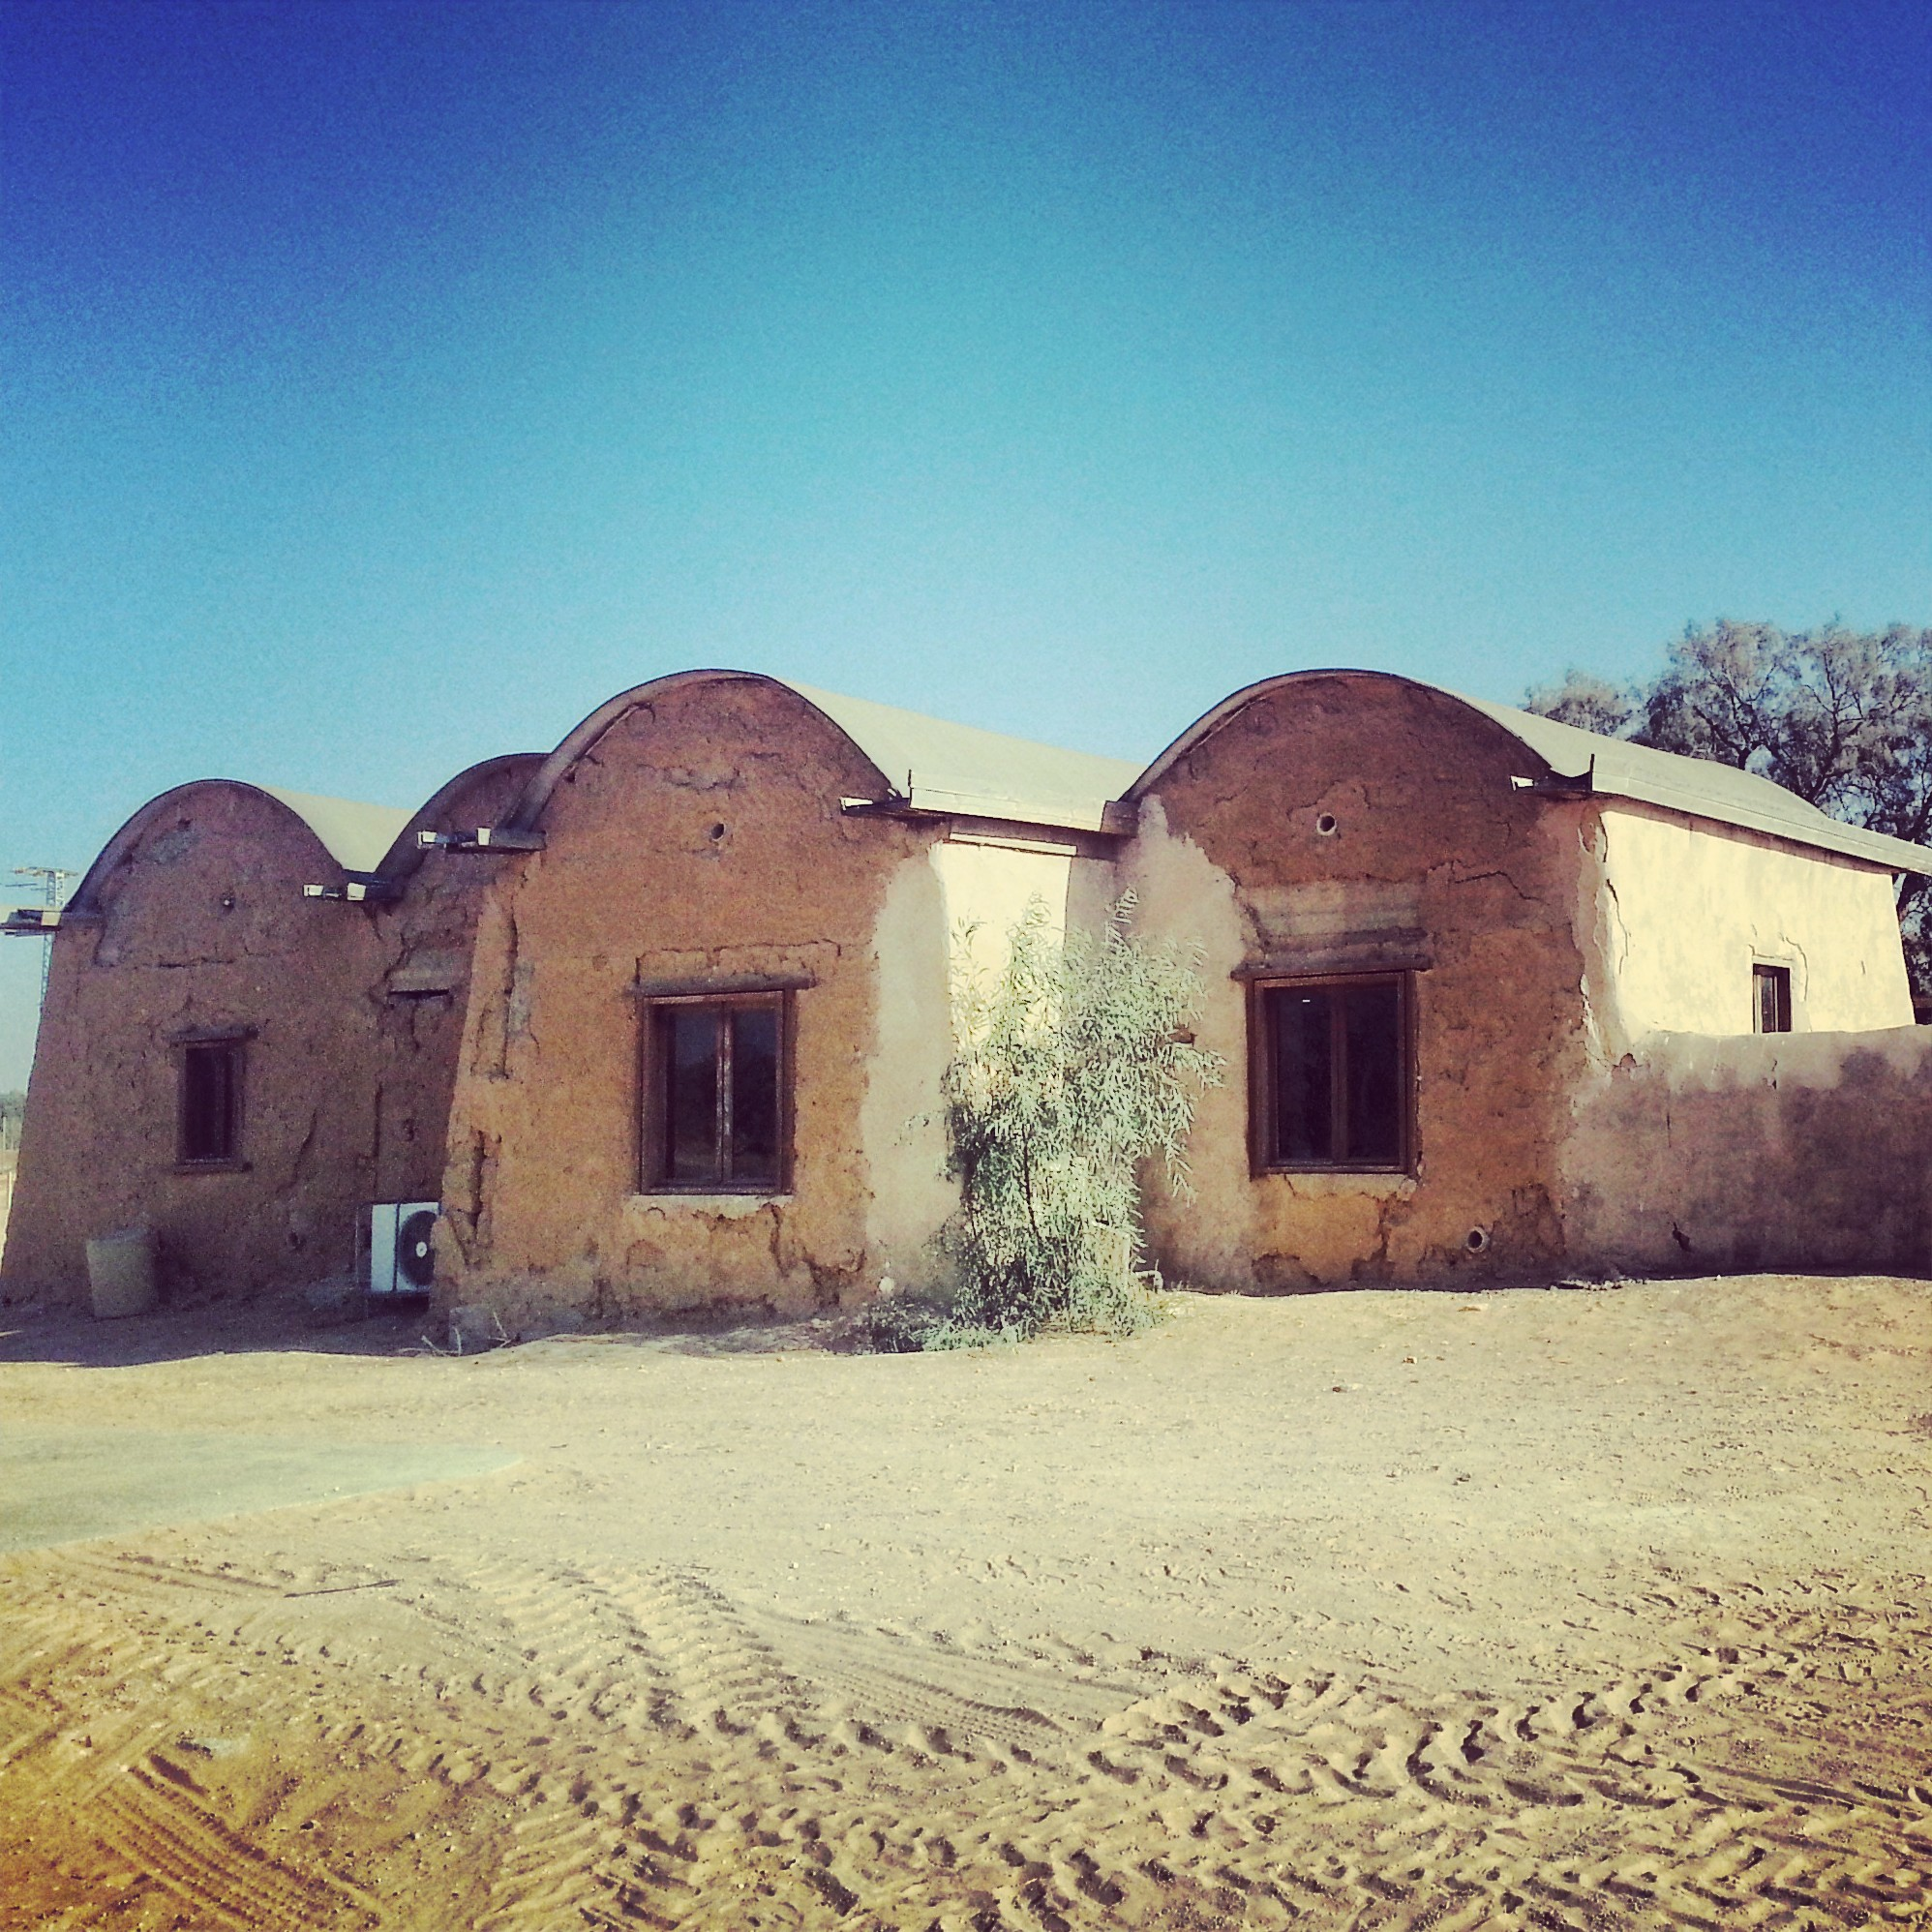 Homes in Mitzpe Gevulot